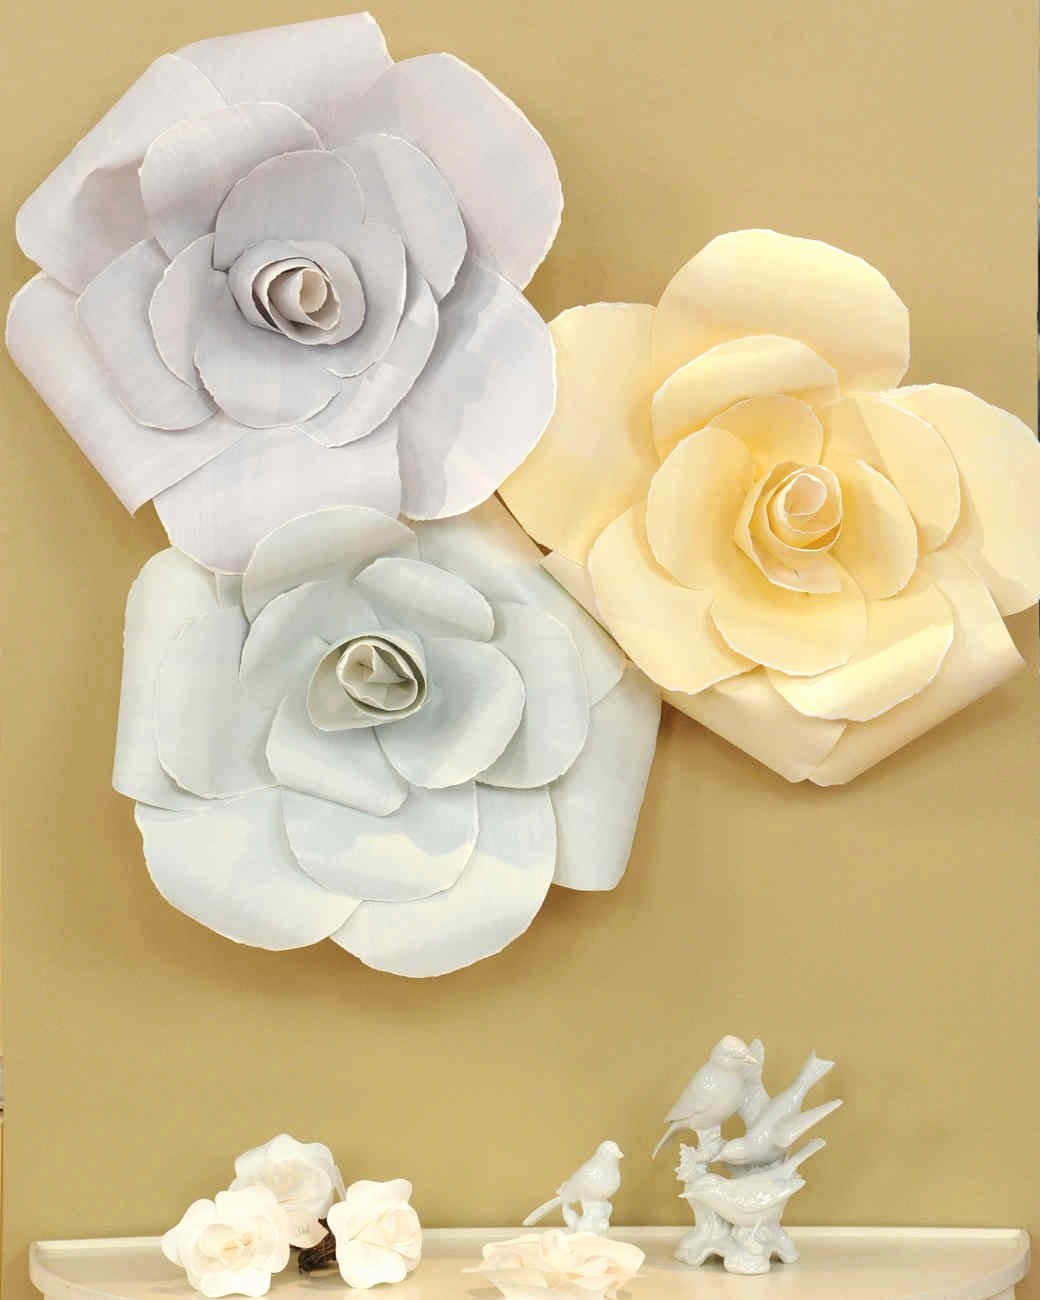 Paper Rose Template Martha Stewart Beautiful Rose Inspired Recipes Crafts and Decor